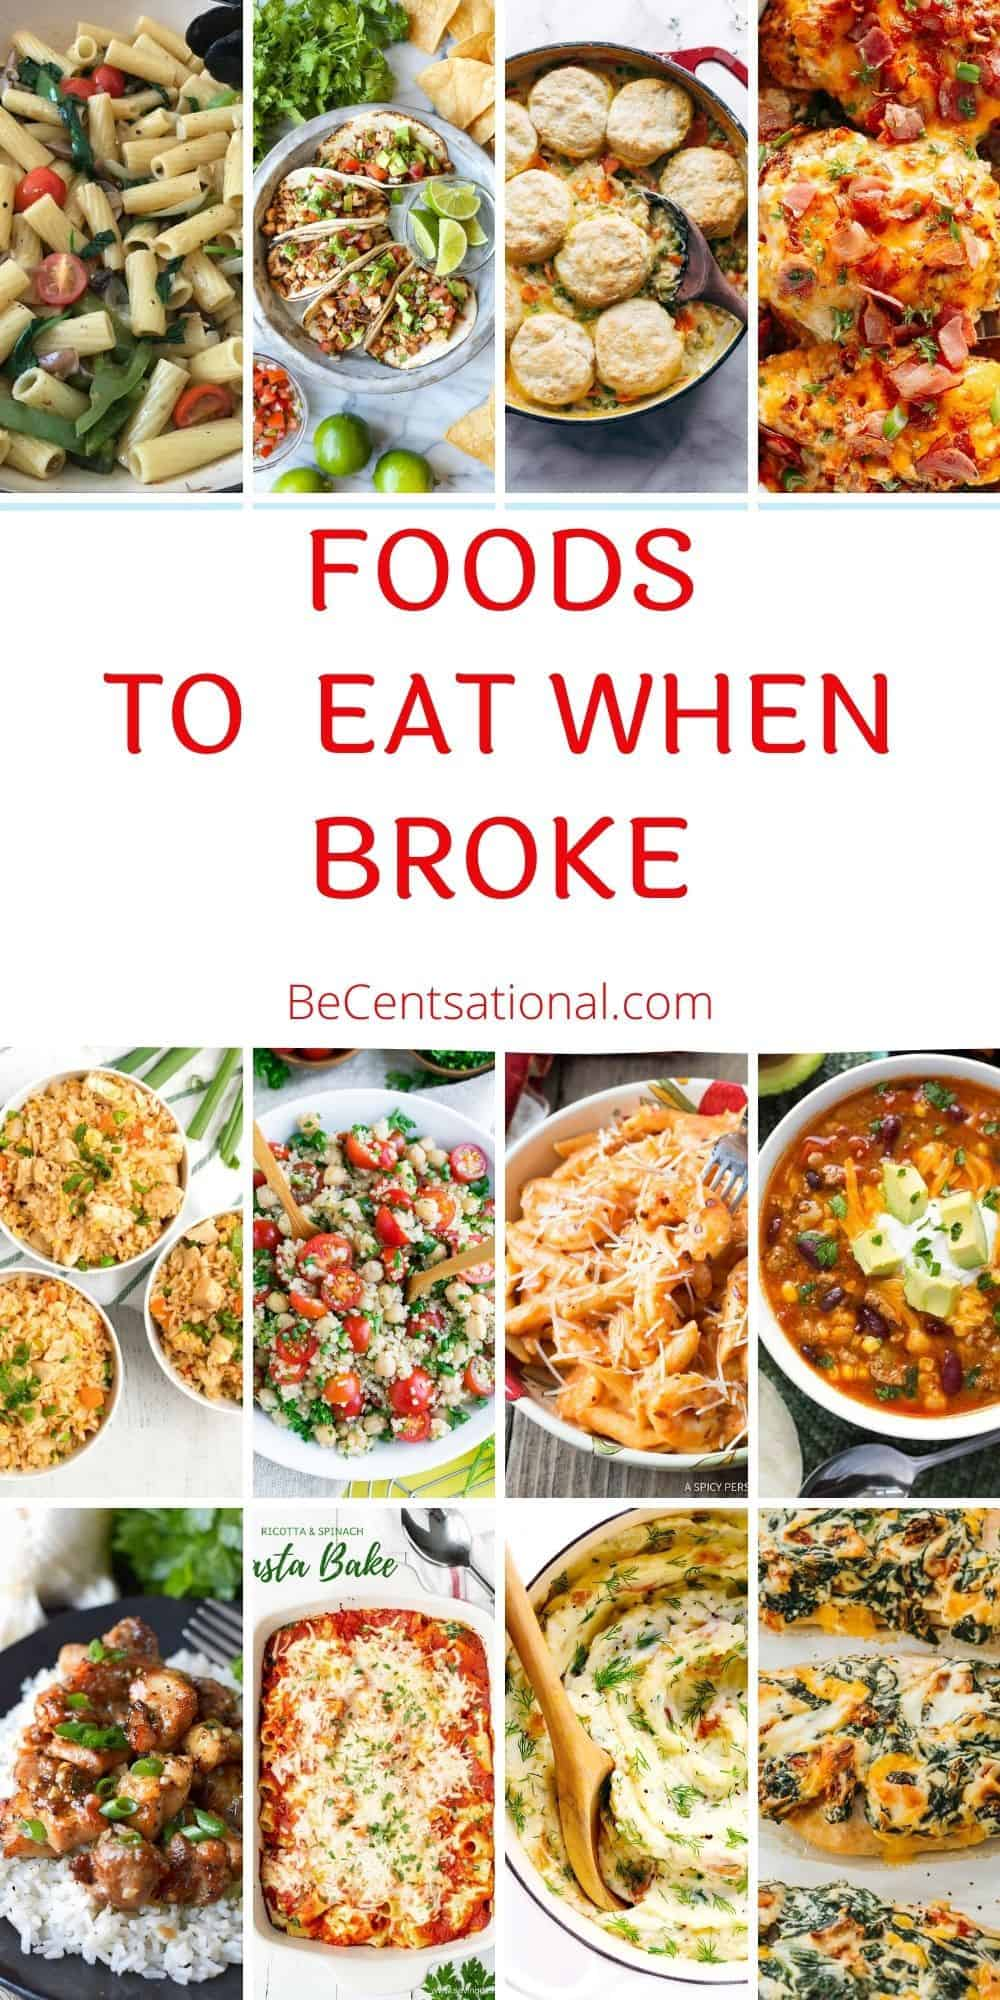 foods to eat when broke